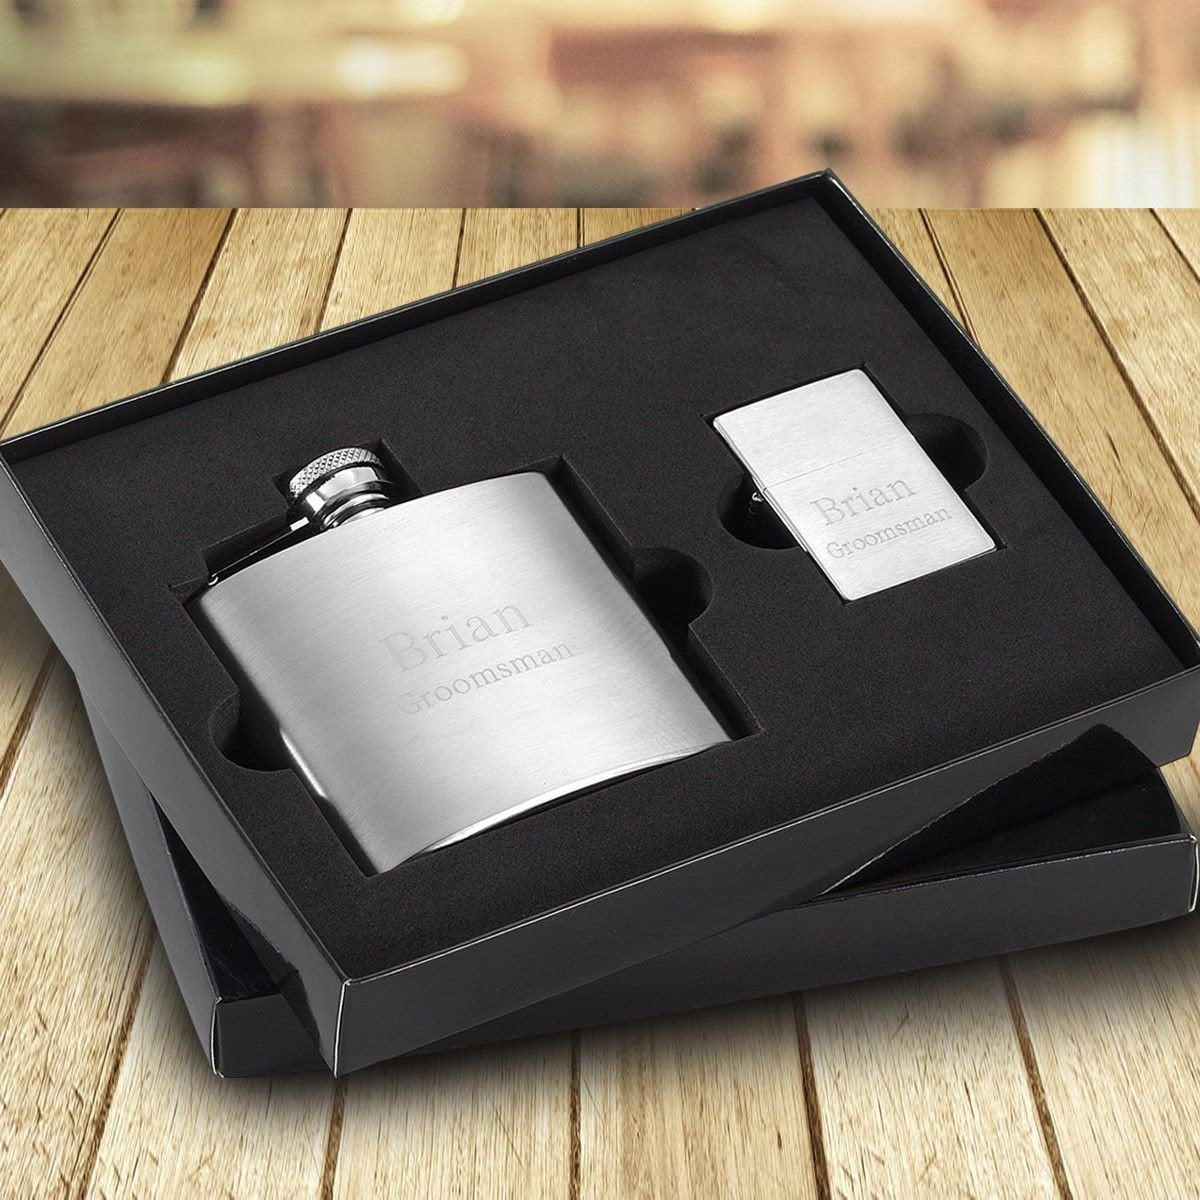 Bro Box #1 Custom Stainless Steel Flask Lighter Gift Set